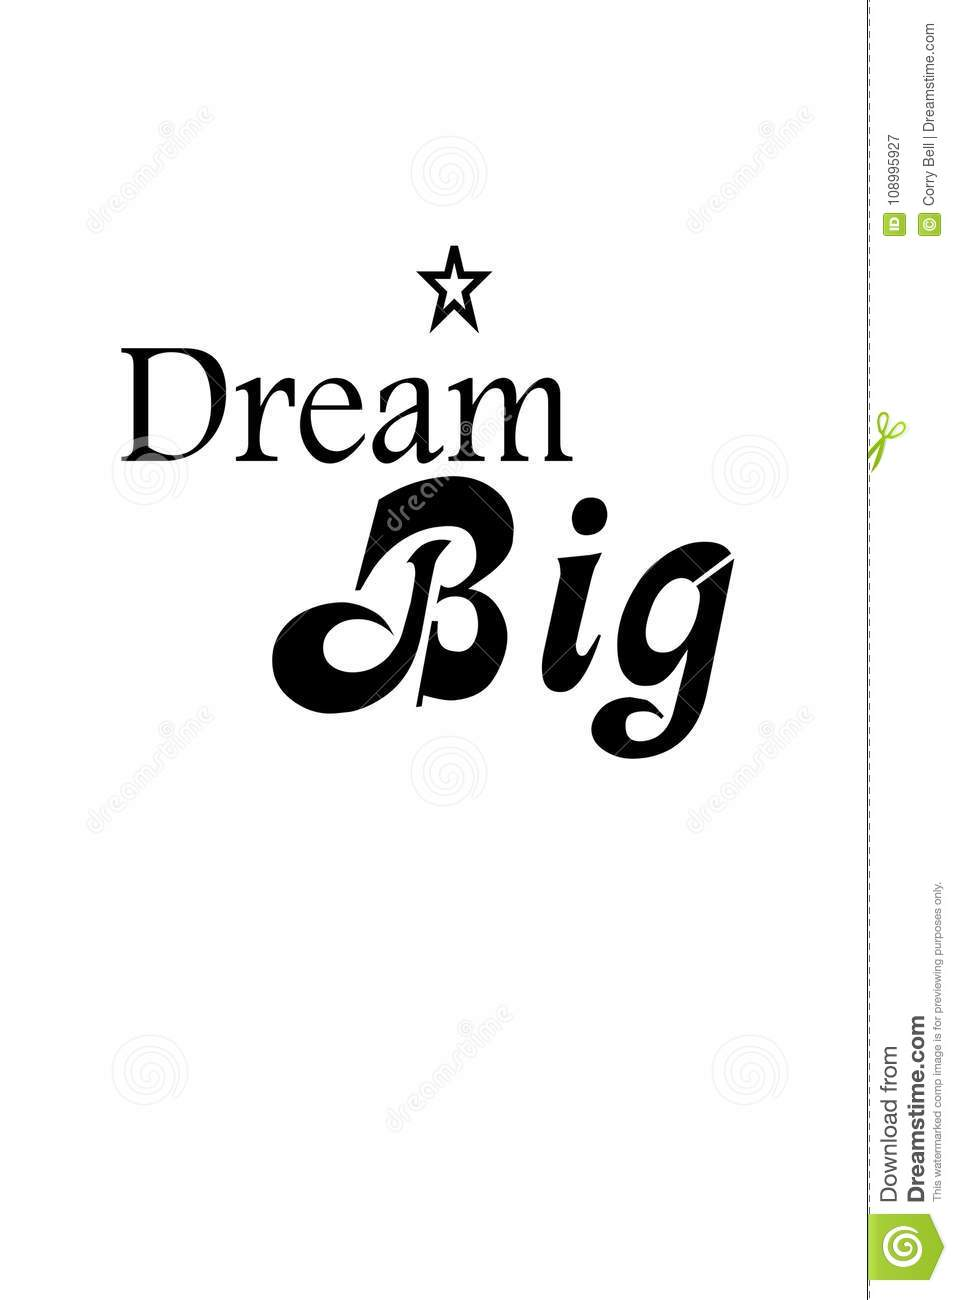 Dream Big Dreams Stock Vector Illustration Of Fulfillment